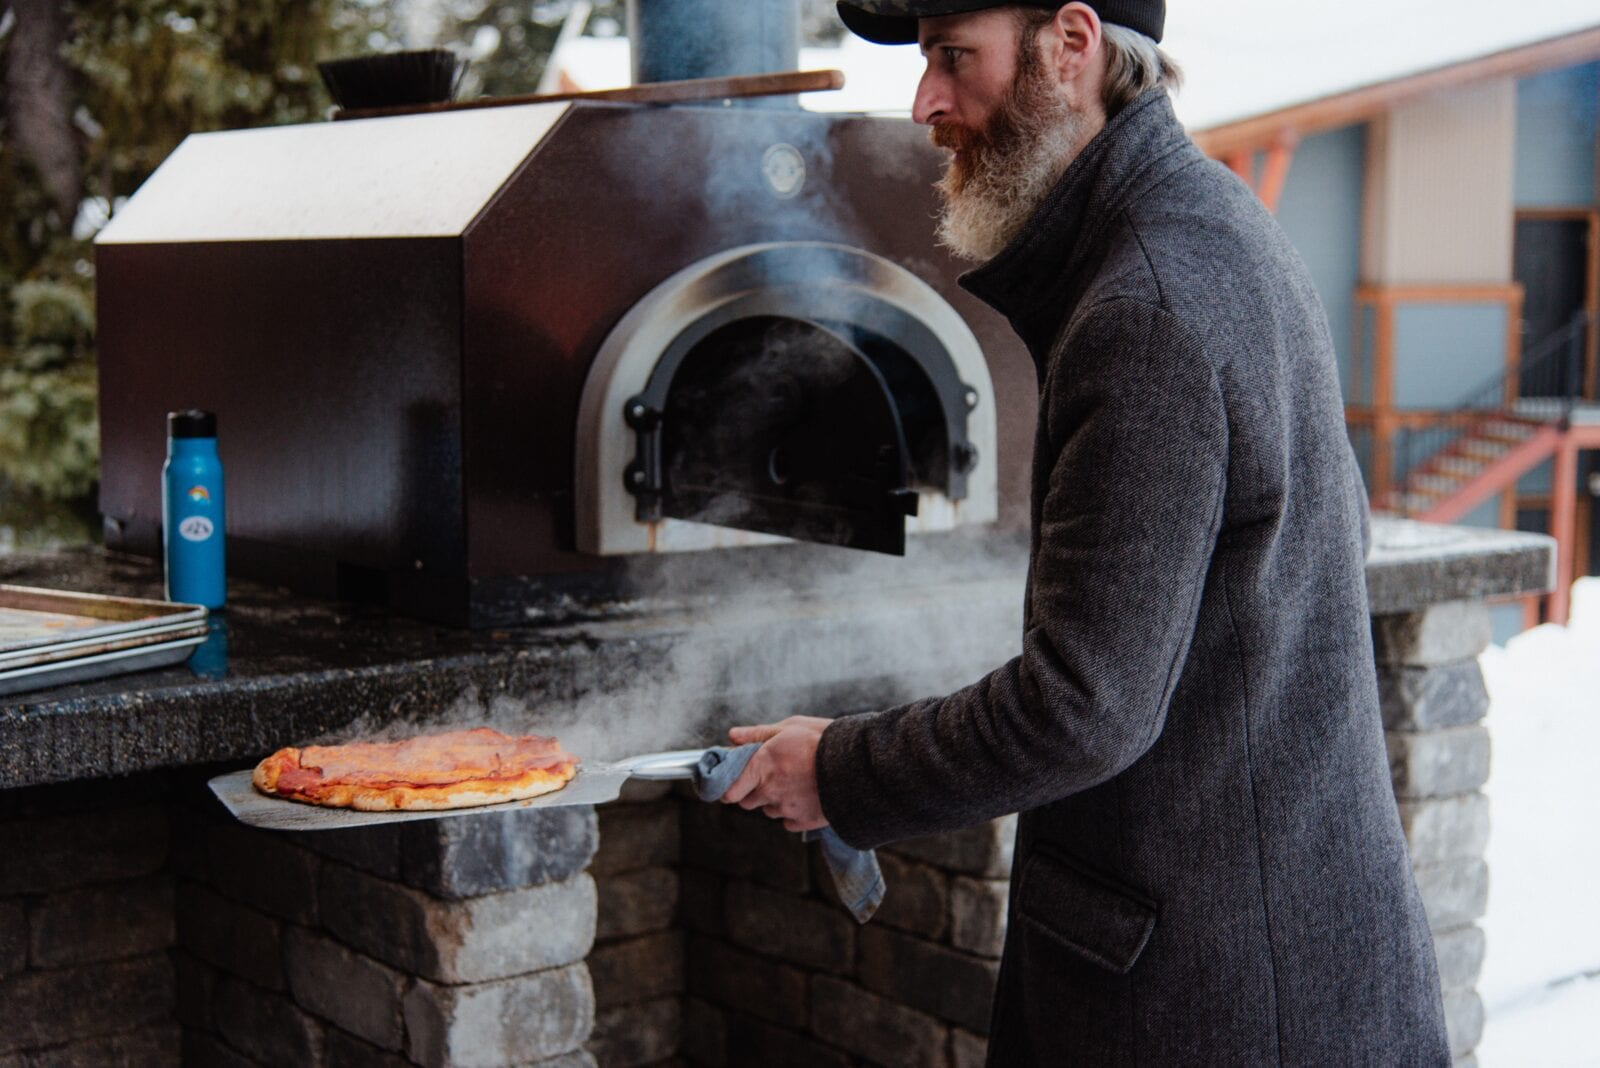 A man removing a freshly cooked delicious pizza from a pizza oven in his garden